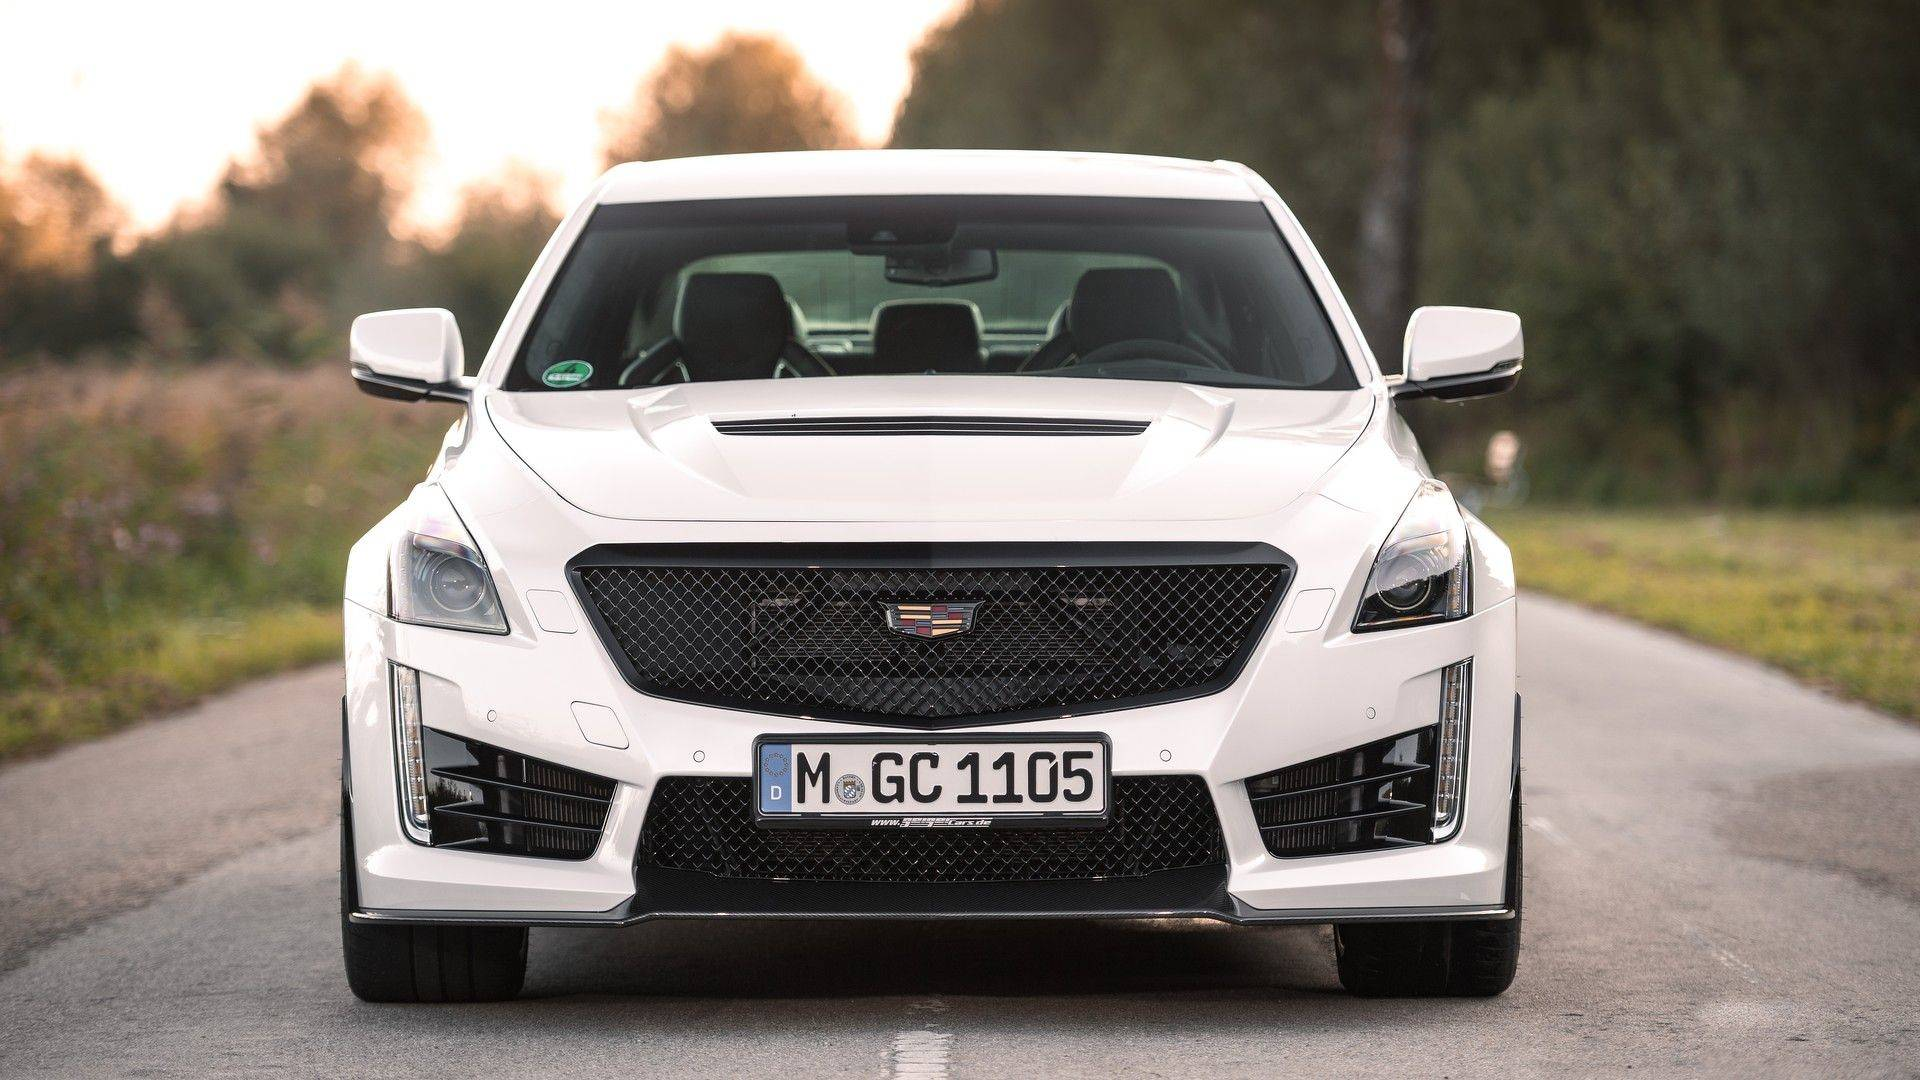 cadillac-cts-v-by-geigercars